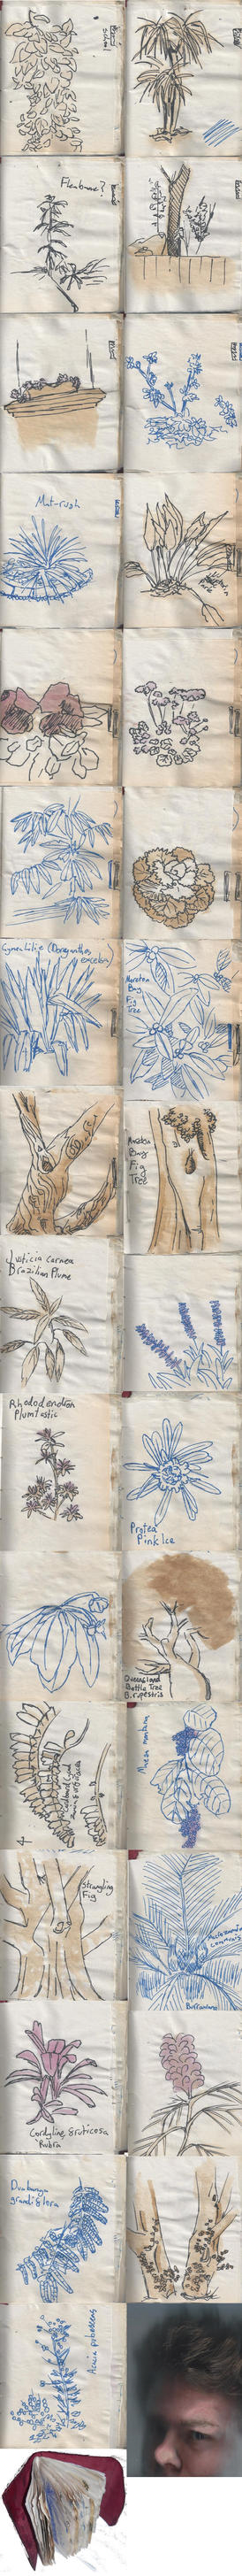 Sketchbook - The local Flora pt 2 by SirFerrick